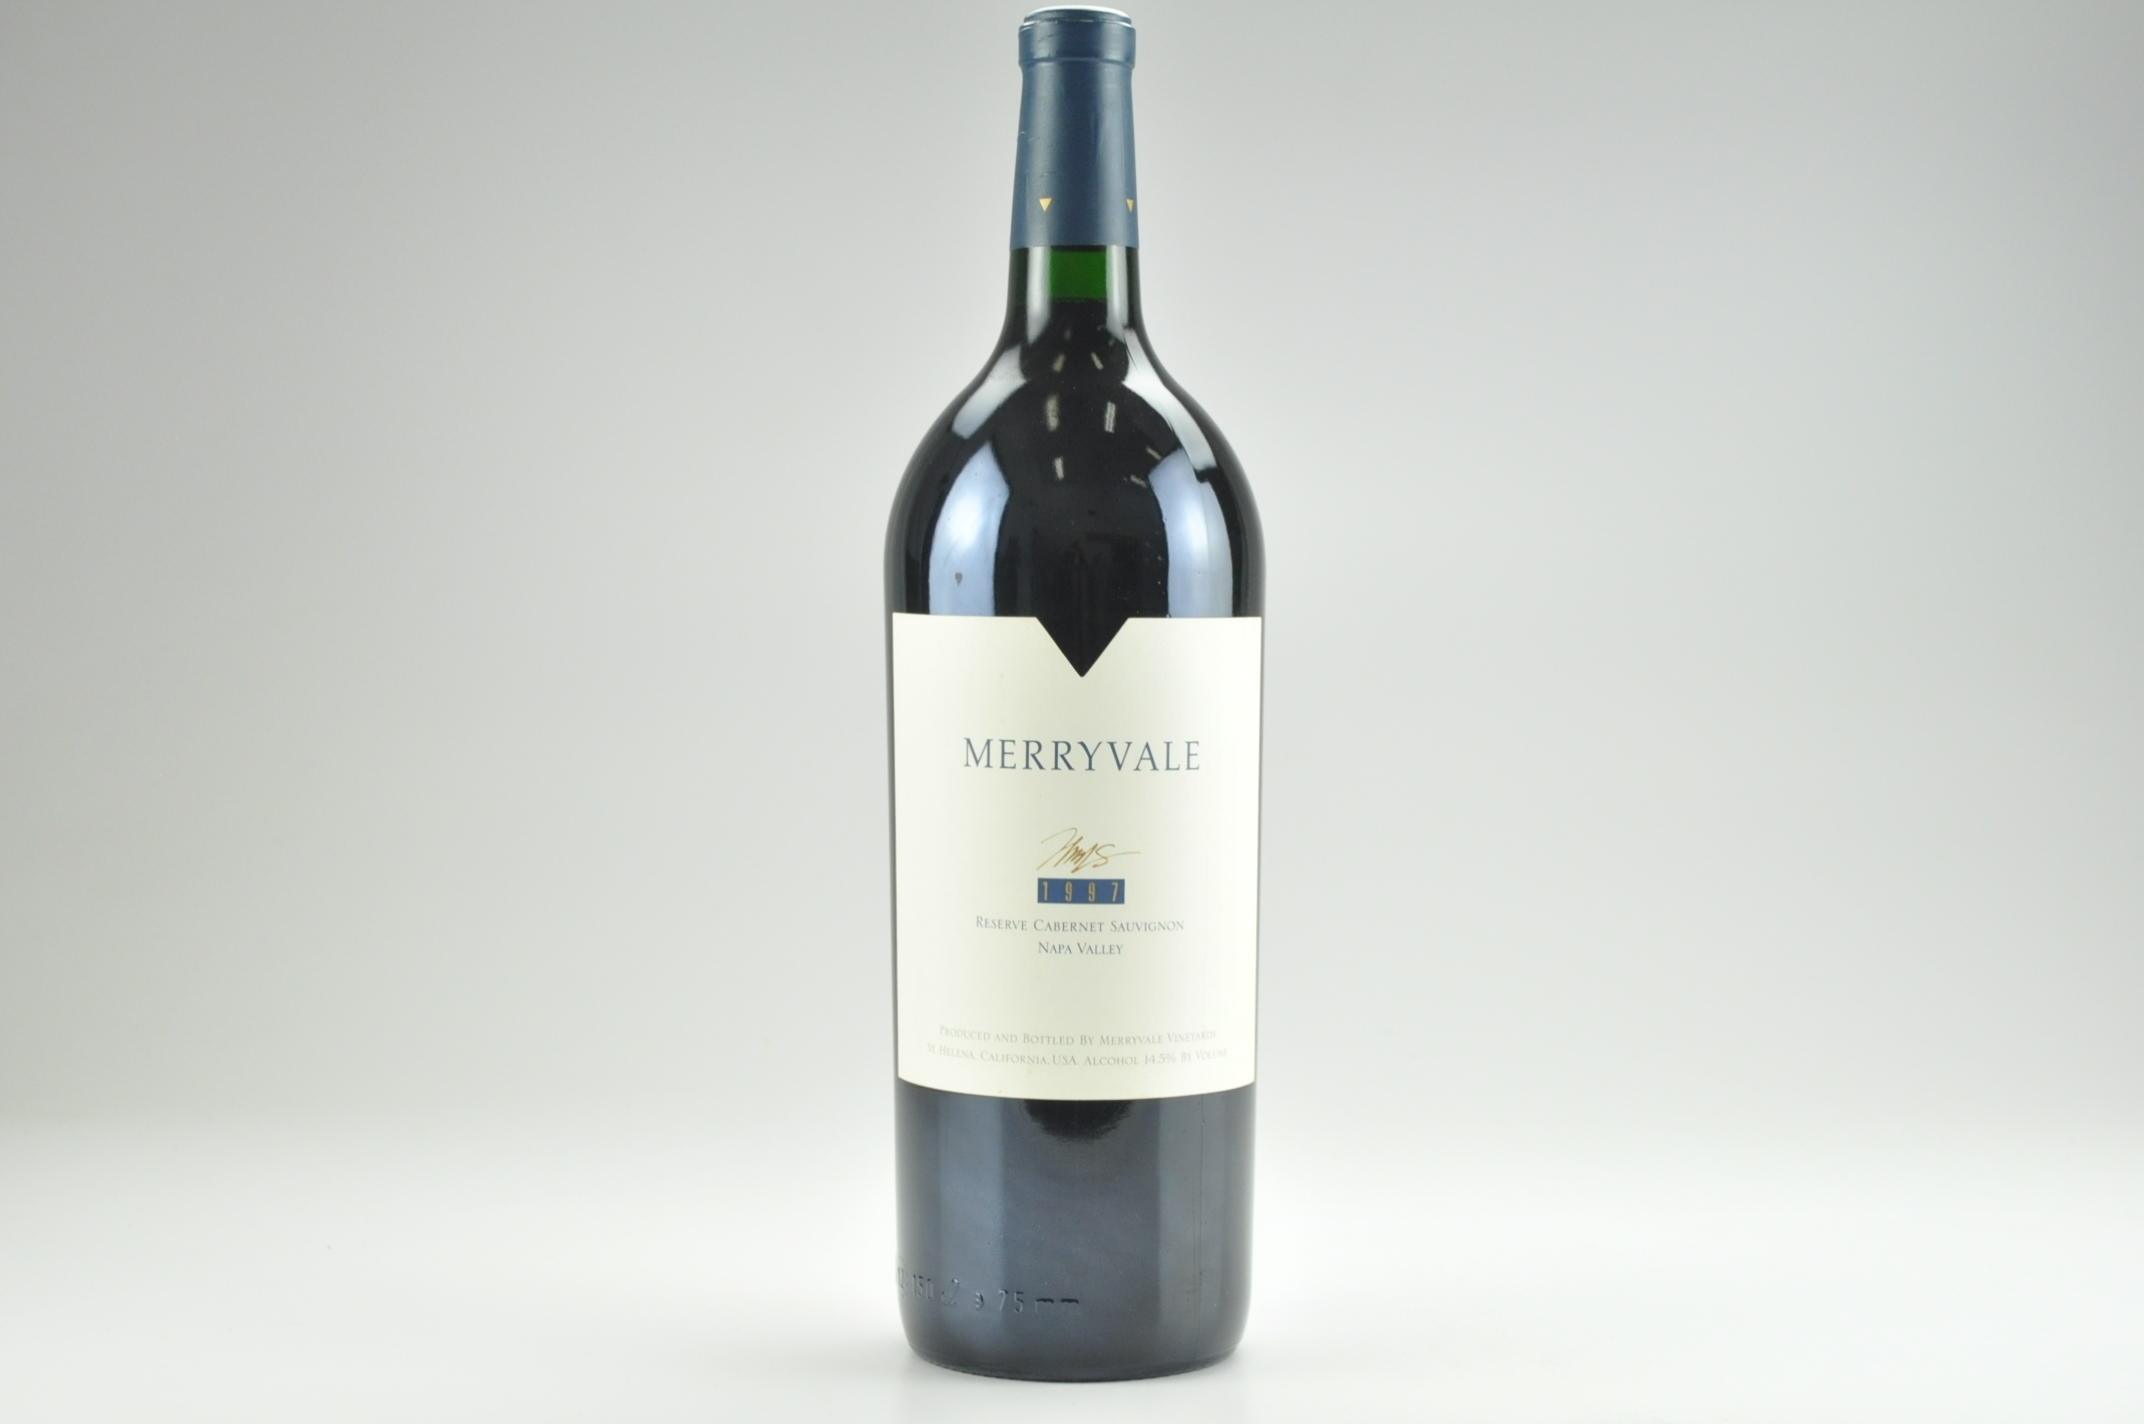 1997 Merryvale Vineyards Cabernet Sauvignon Reserve 1.5 L, Napa Valley